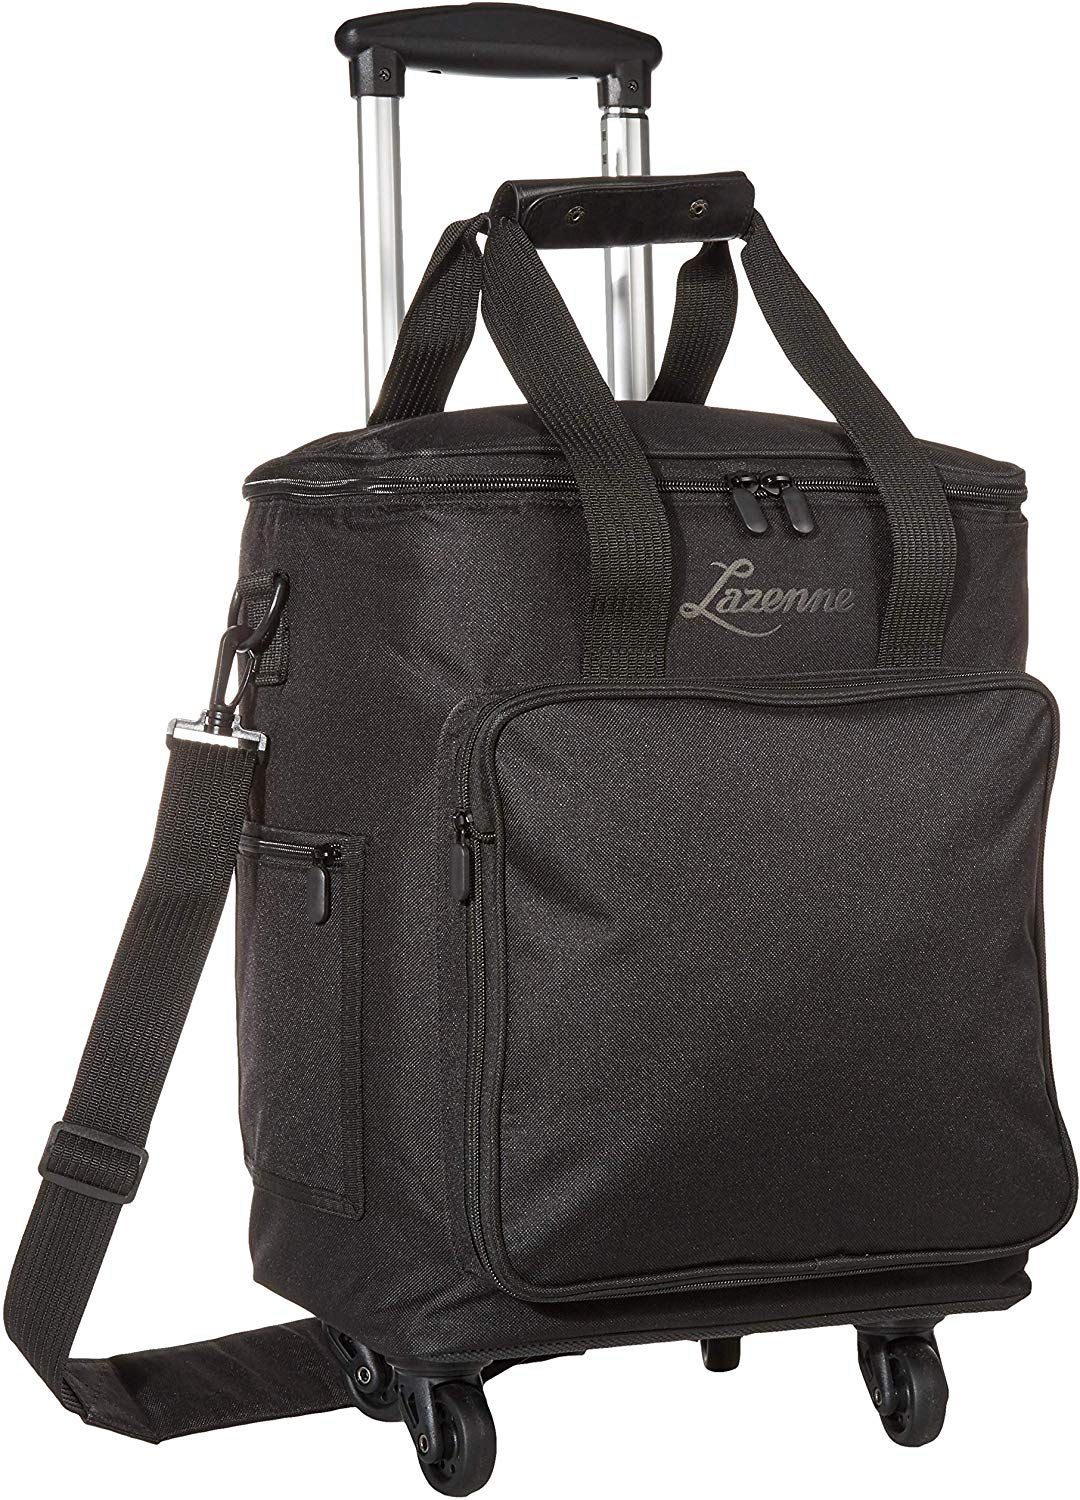 NEW - Lazenne Wine Cooler Bag for 6 bottles with Insulated and Removable Dividers